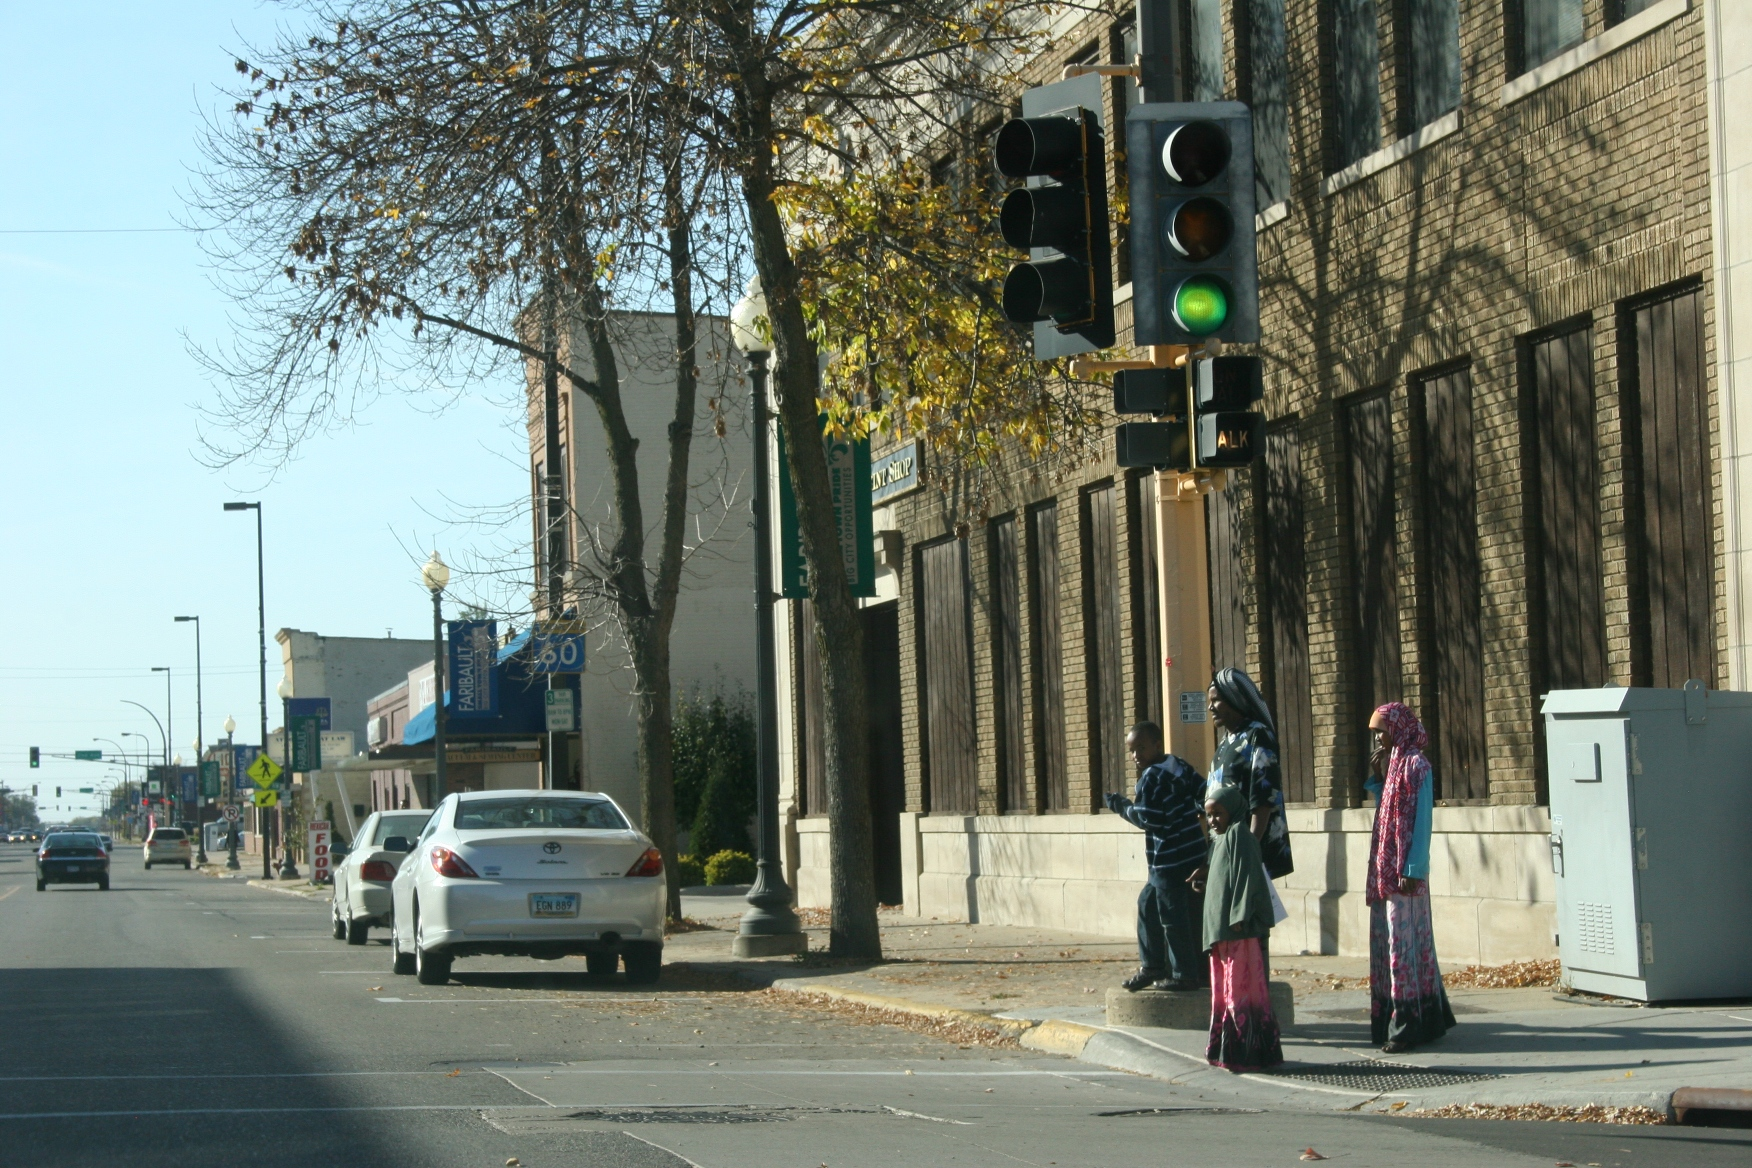 In this file photo, a Somali family waits to cross a downtown Faribault street.